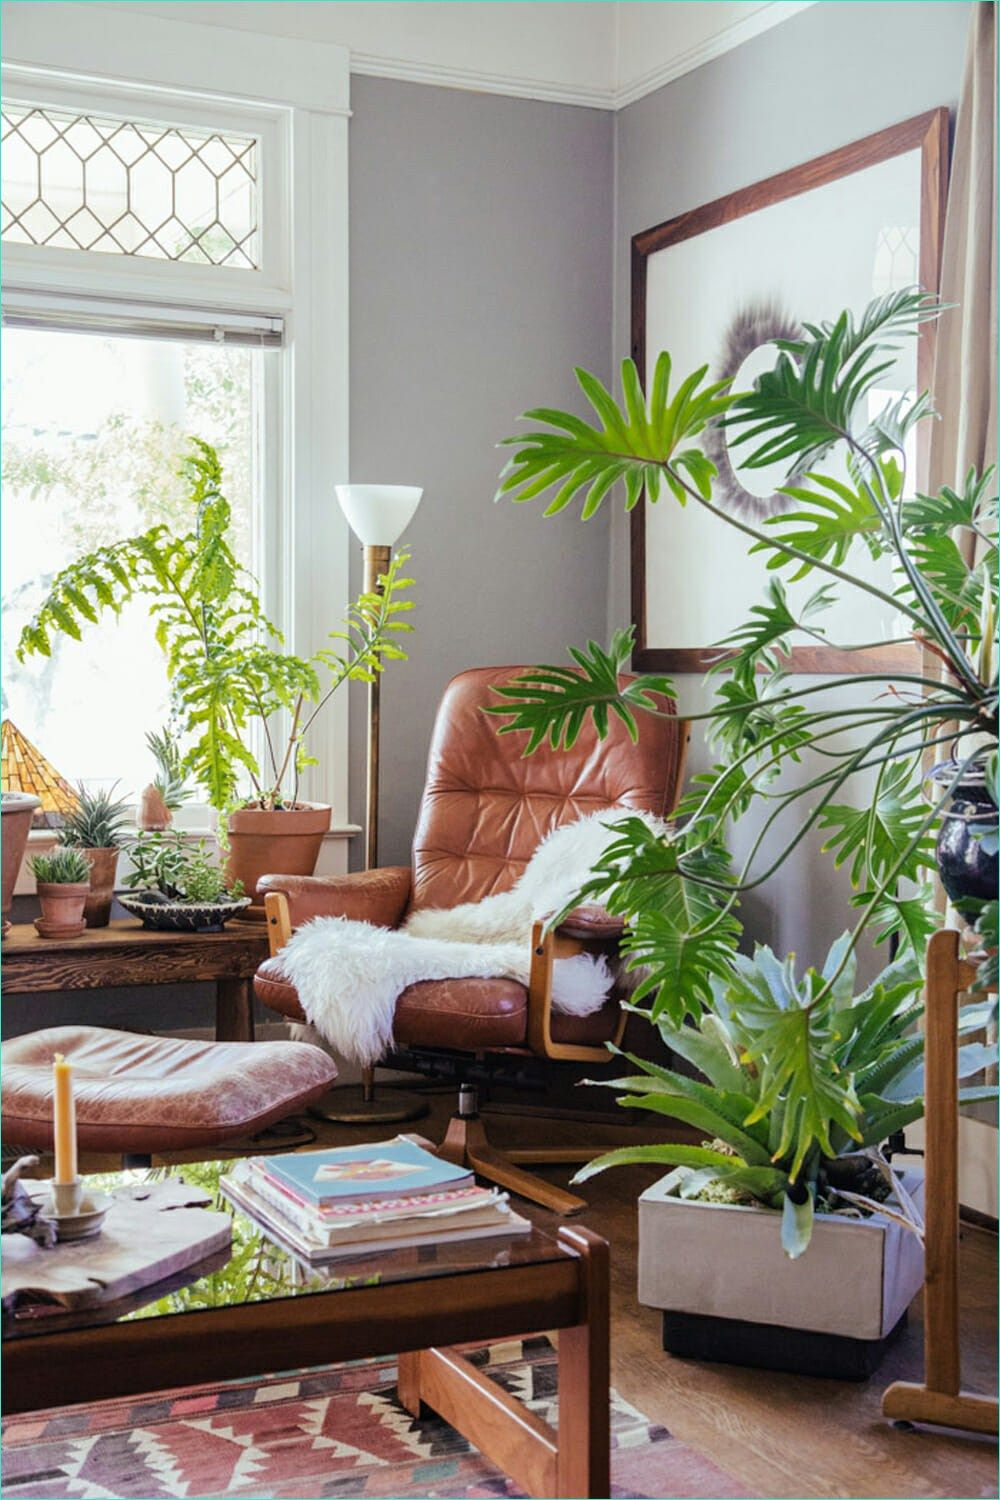 37 Cozy Living Room With Green Plants Beauty Room Decor Li